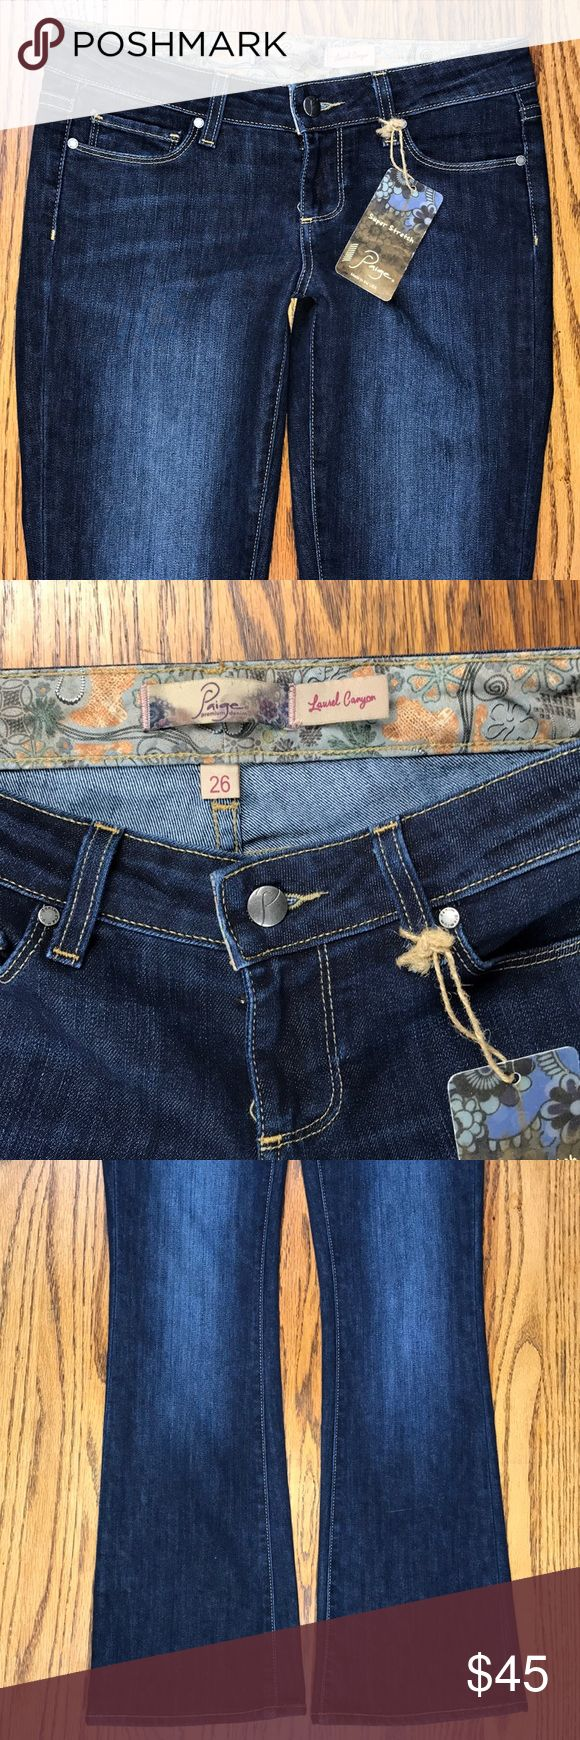 """Paige Laurel Canyon Stretch Denim Jeans New, with tags. Paige premium denim jeans, Laurel Canyon edition. Tagged 26, measures flat, waist 15.25, Rise 7.5"""", Inseam 31"""", Leg opening 8.75. New, perfect. Paige Jeans Jeans"""